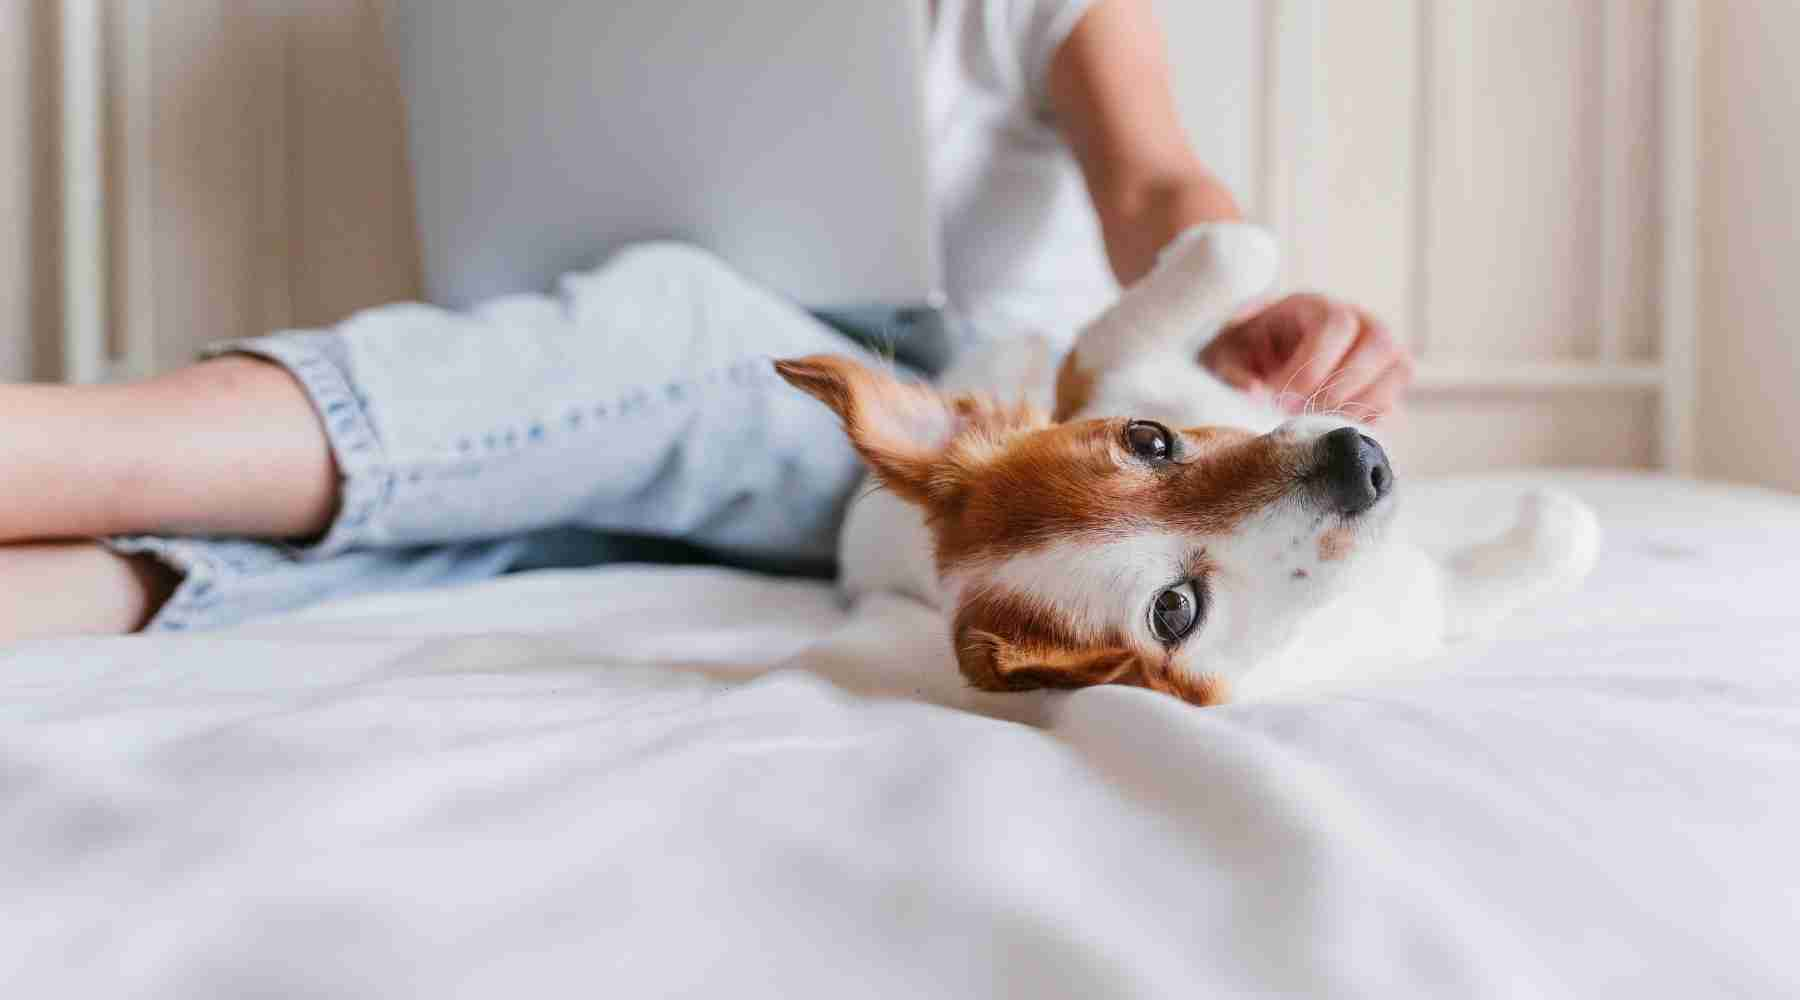 How to Make $400 Fast - Pet Sitting